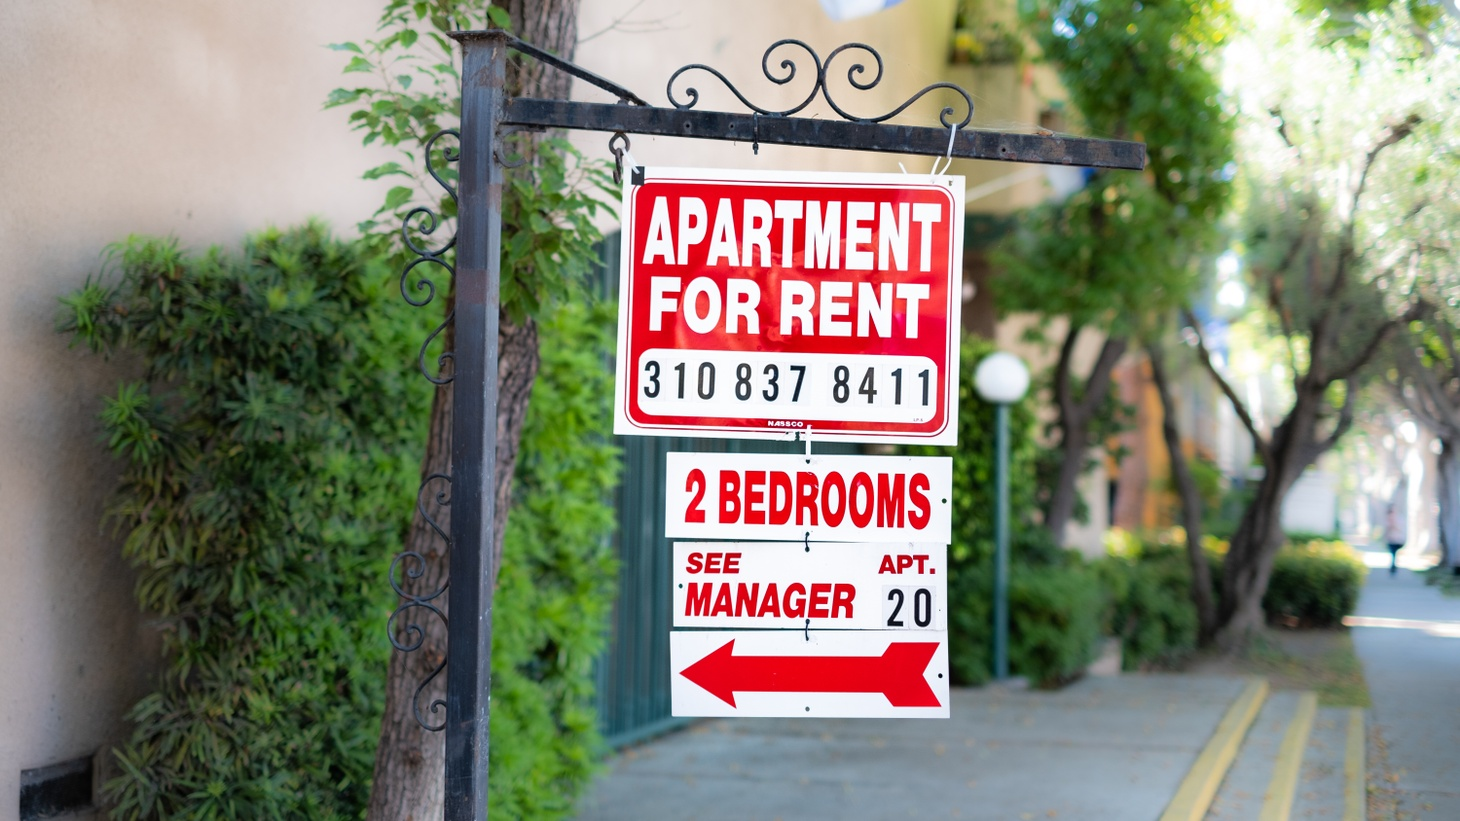 Rent in LA is down during this pandemic but up elsewhere, such as the Inland Empire.